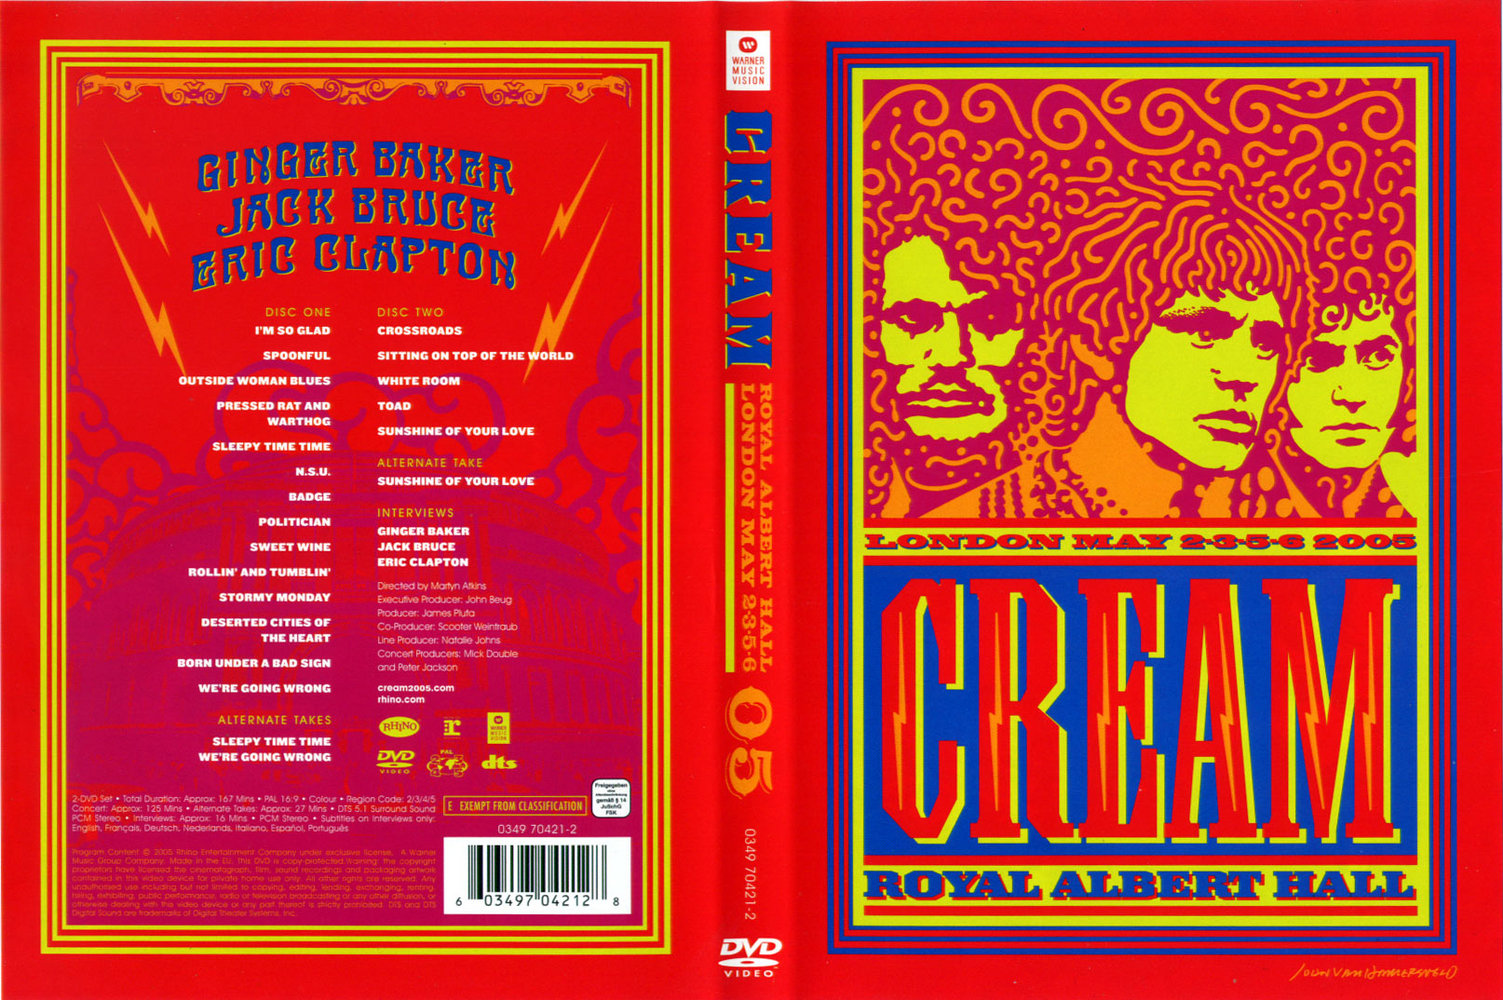 dvdmania cream royal albert hall london may 2 3 5 6 2005. Black Bedroom Furniture Sets. Home Design Ideas